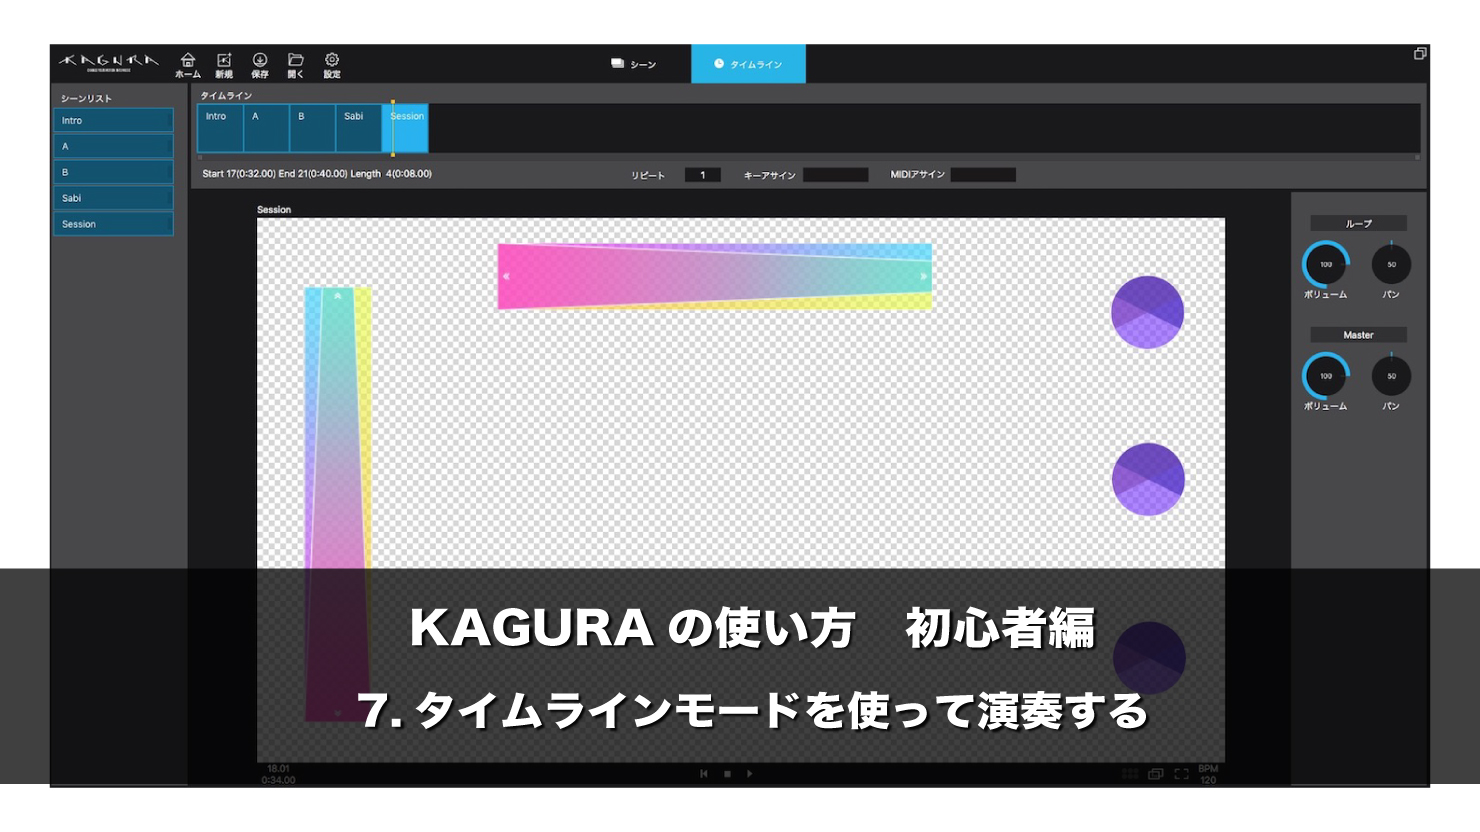 kagura_07_2_top